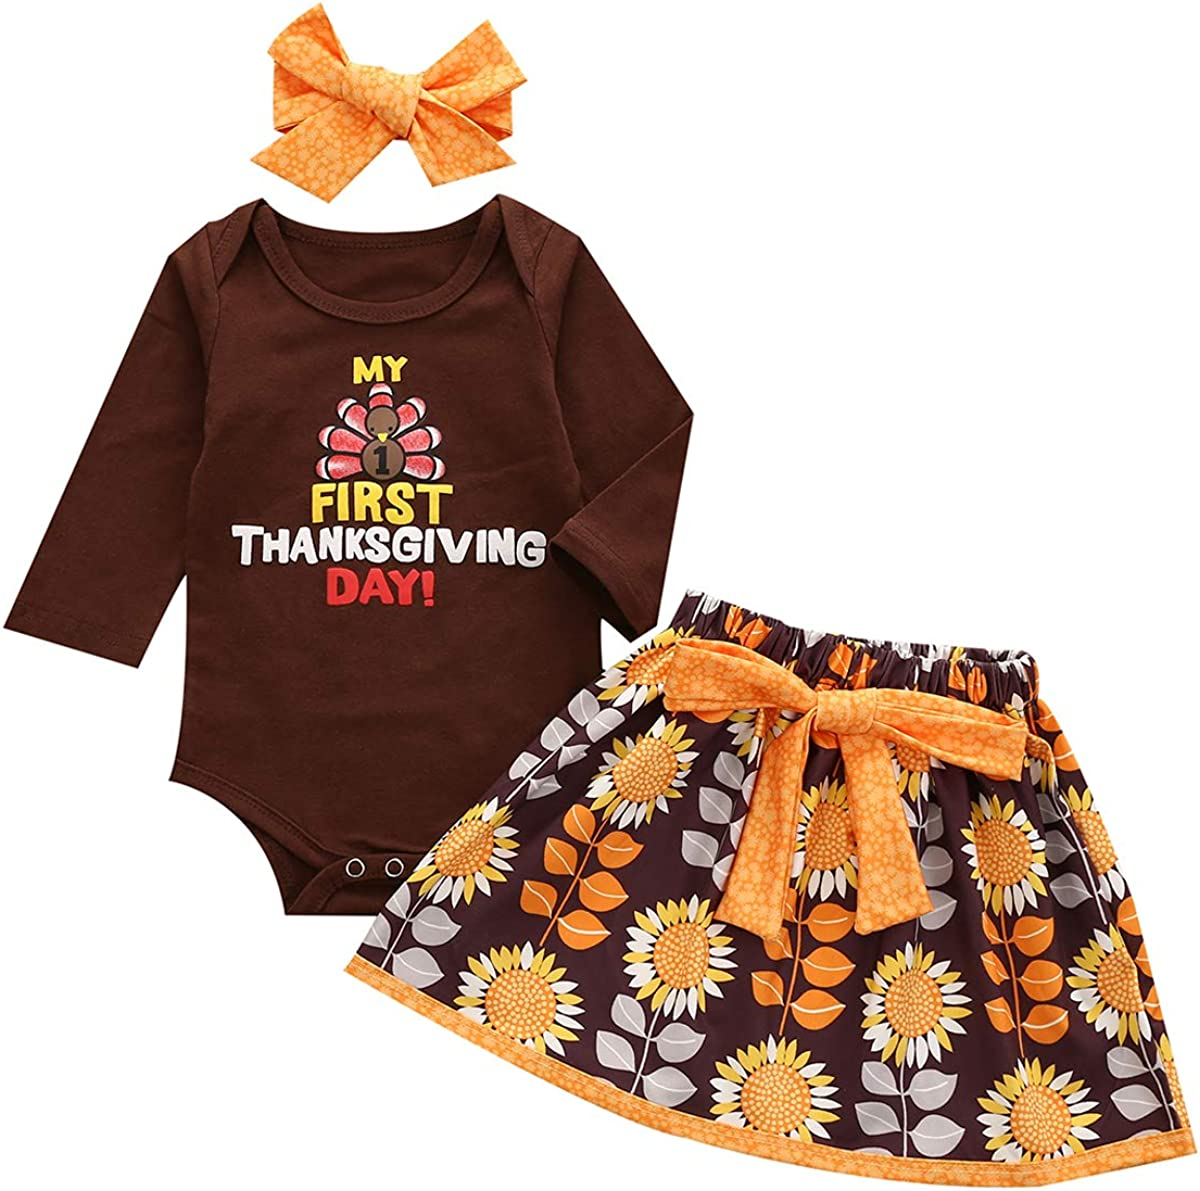 My Frist Thanksgiving Baby Girls Skirt Set Outfit Long Sleeve Turkey Romper+Floral Skirt+Headband Autumn Outfit